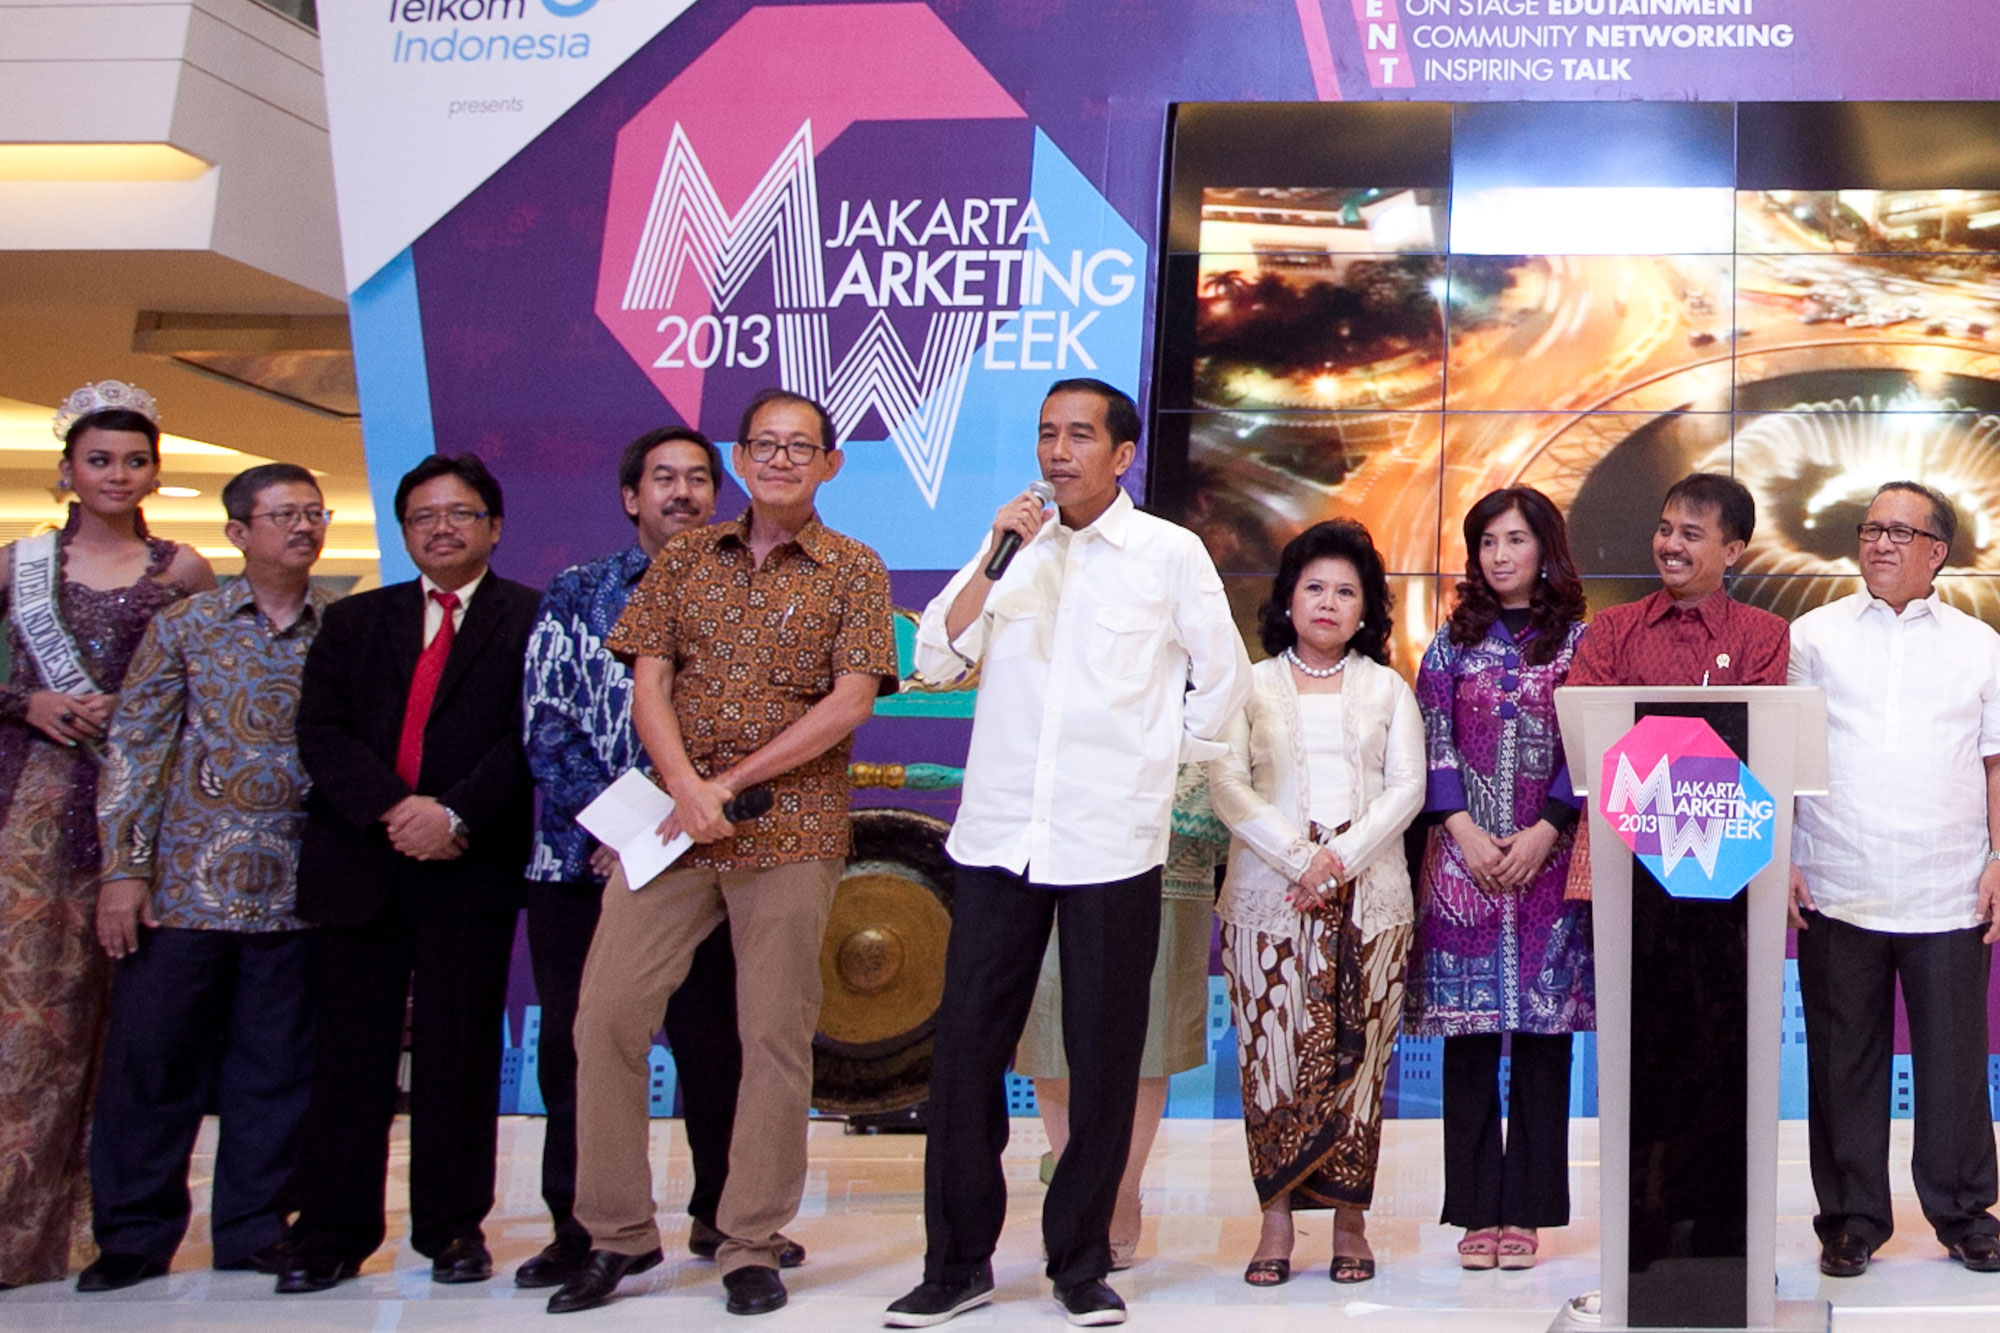 jakarta-marketing-week-2013-Opening